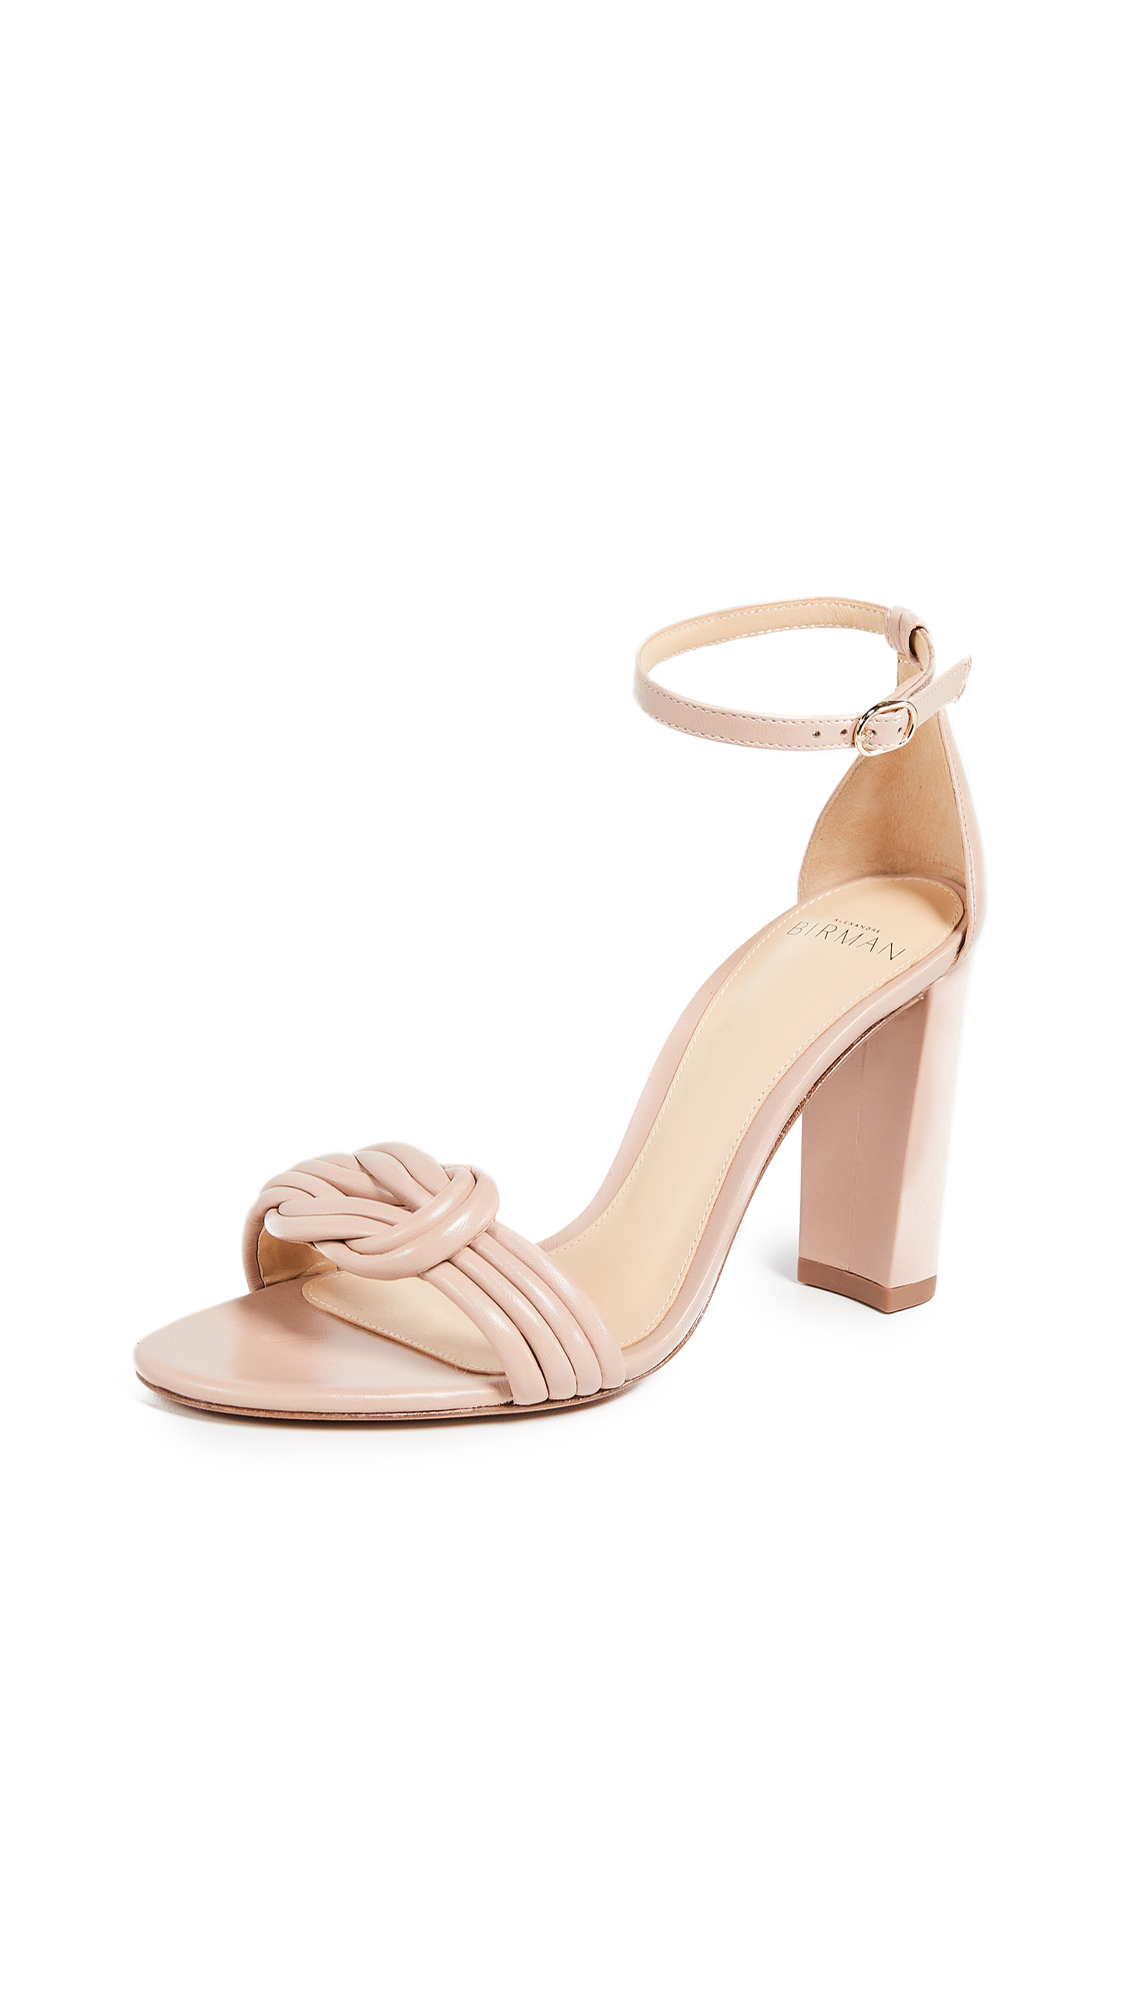 Alexandre Birman Chiara 90mm Block Sandals - Light Sand